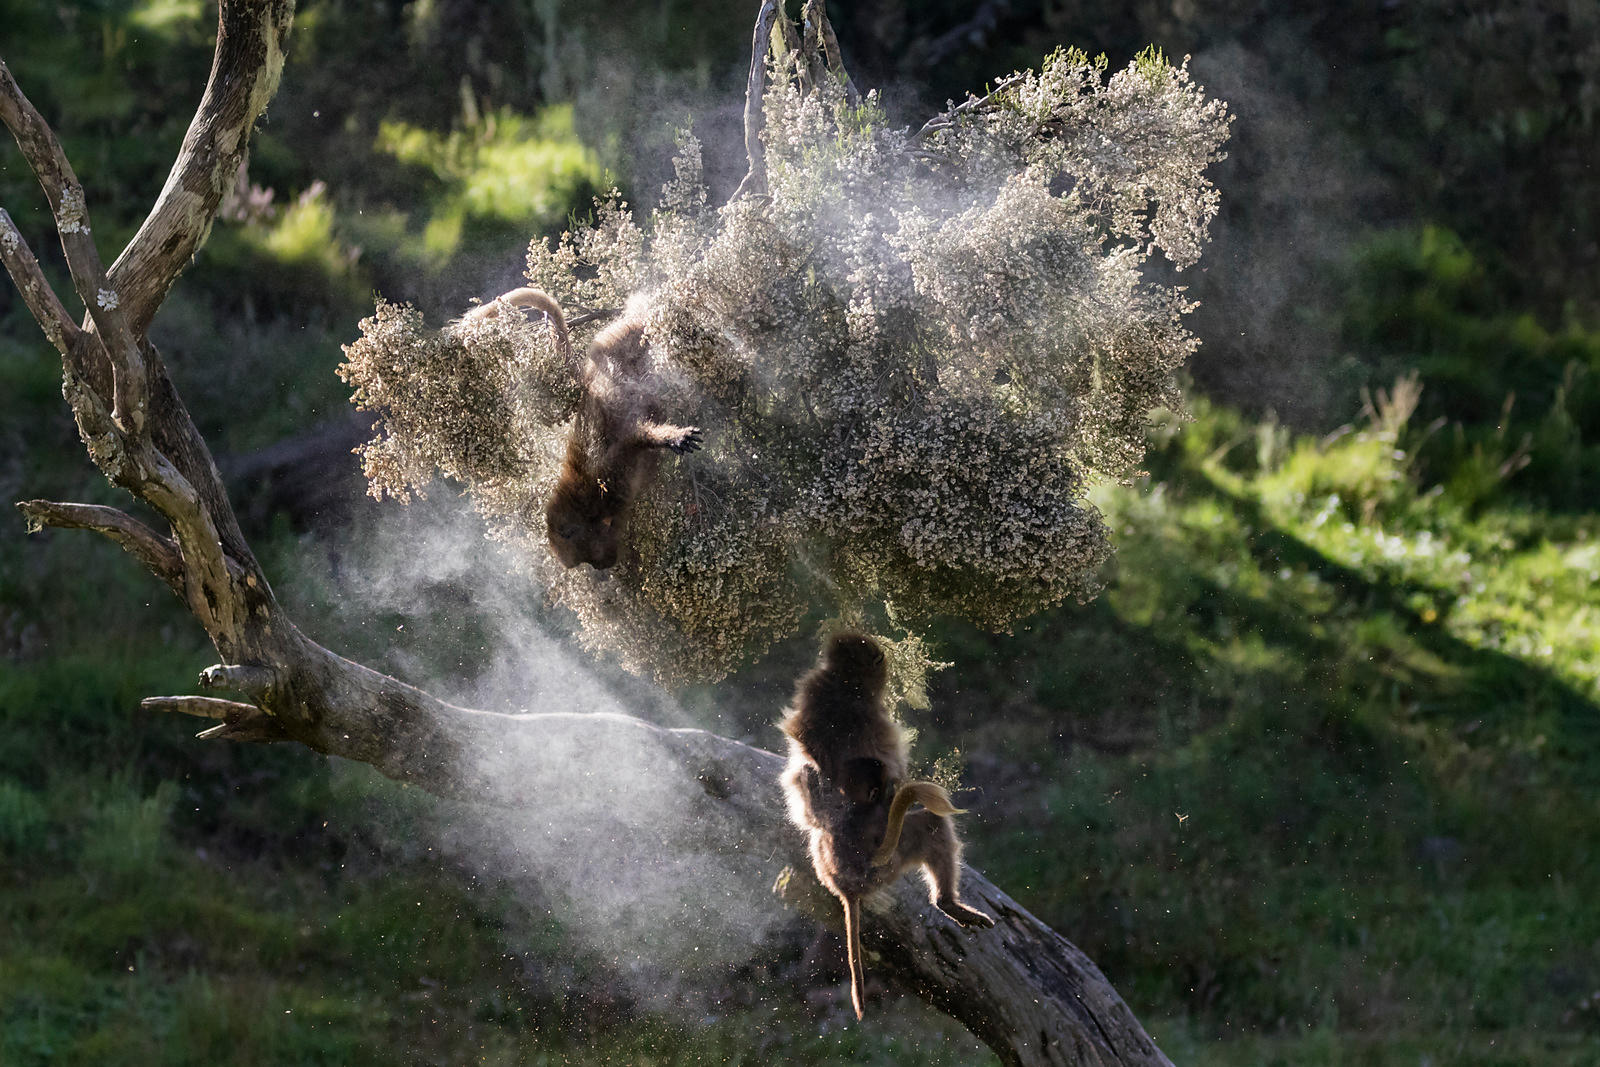 A Gelada Baboon Family Plays in a Tree Laden with Pollen